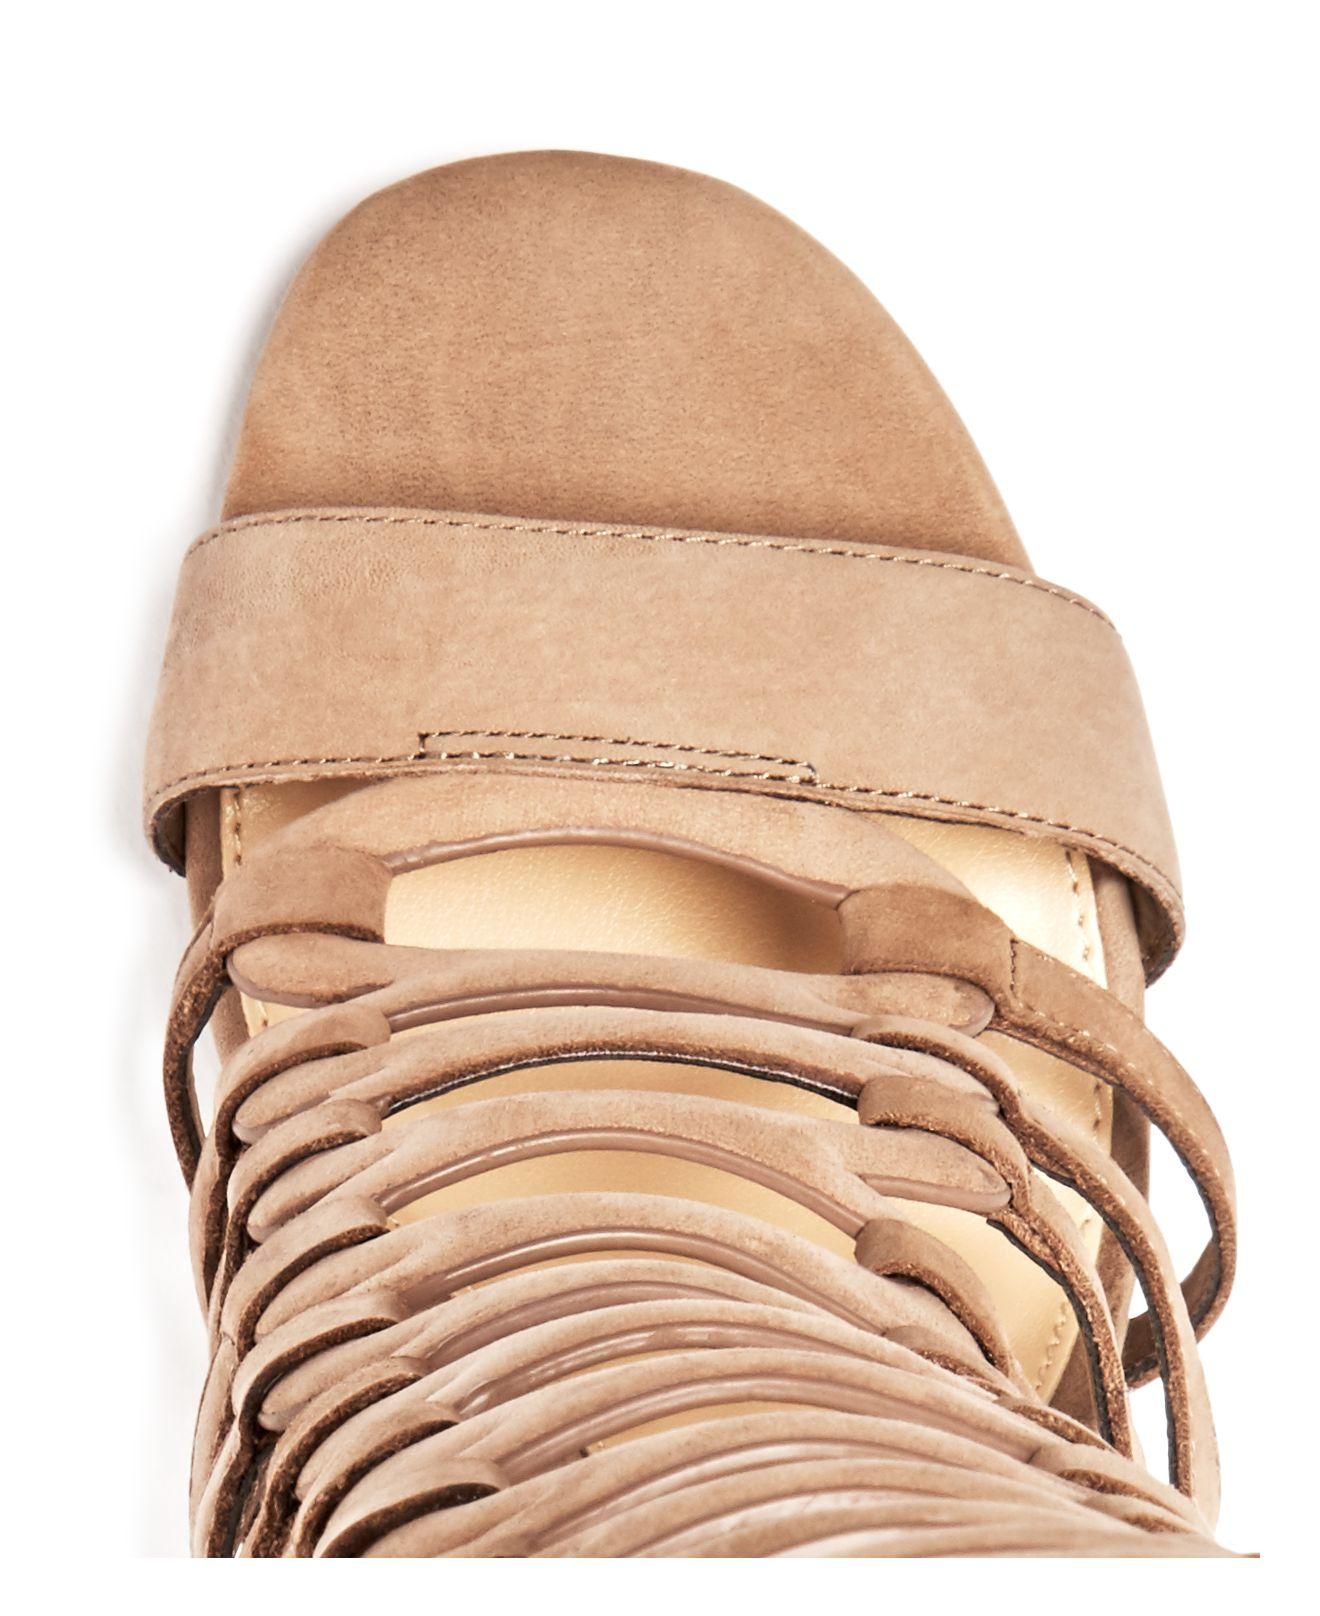 ebdd850e7b77 Vince Camuto Chesta Caged Gladiator Sandals in Natural - Lyst